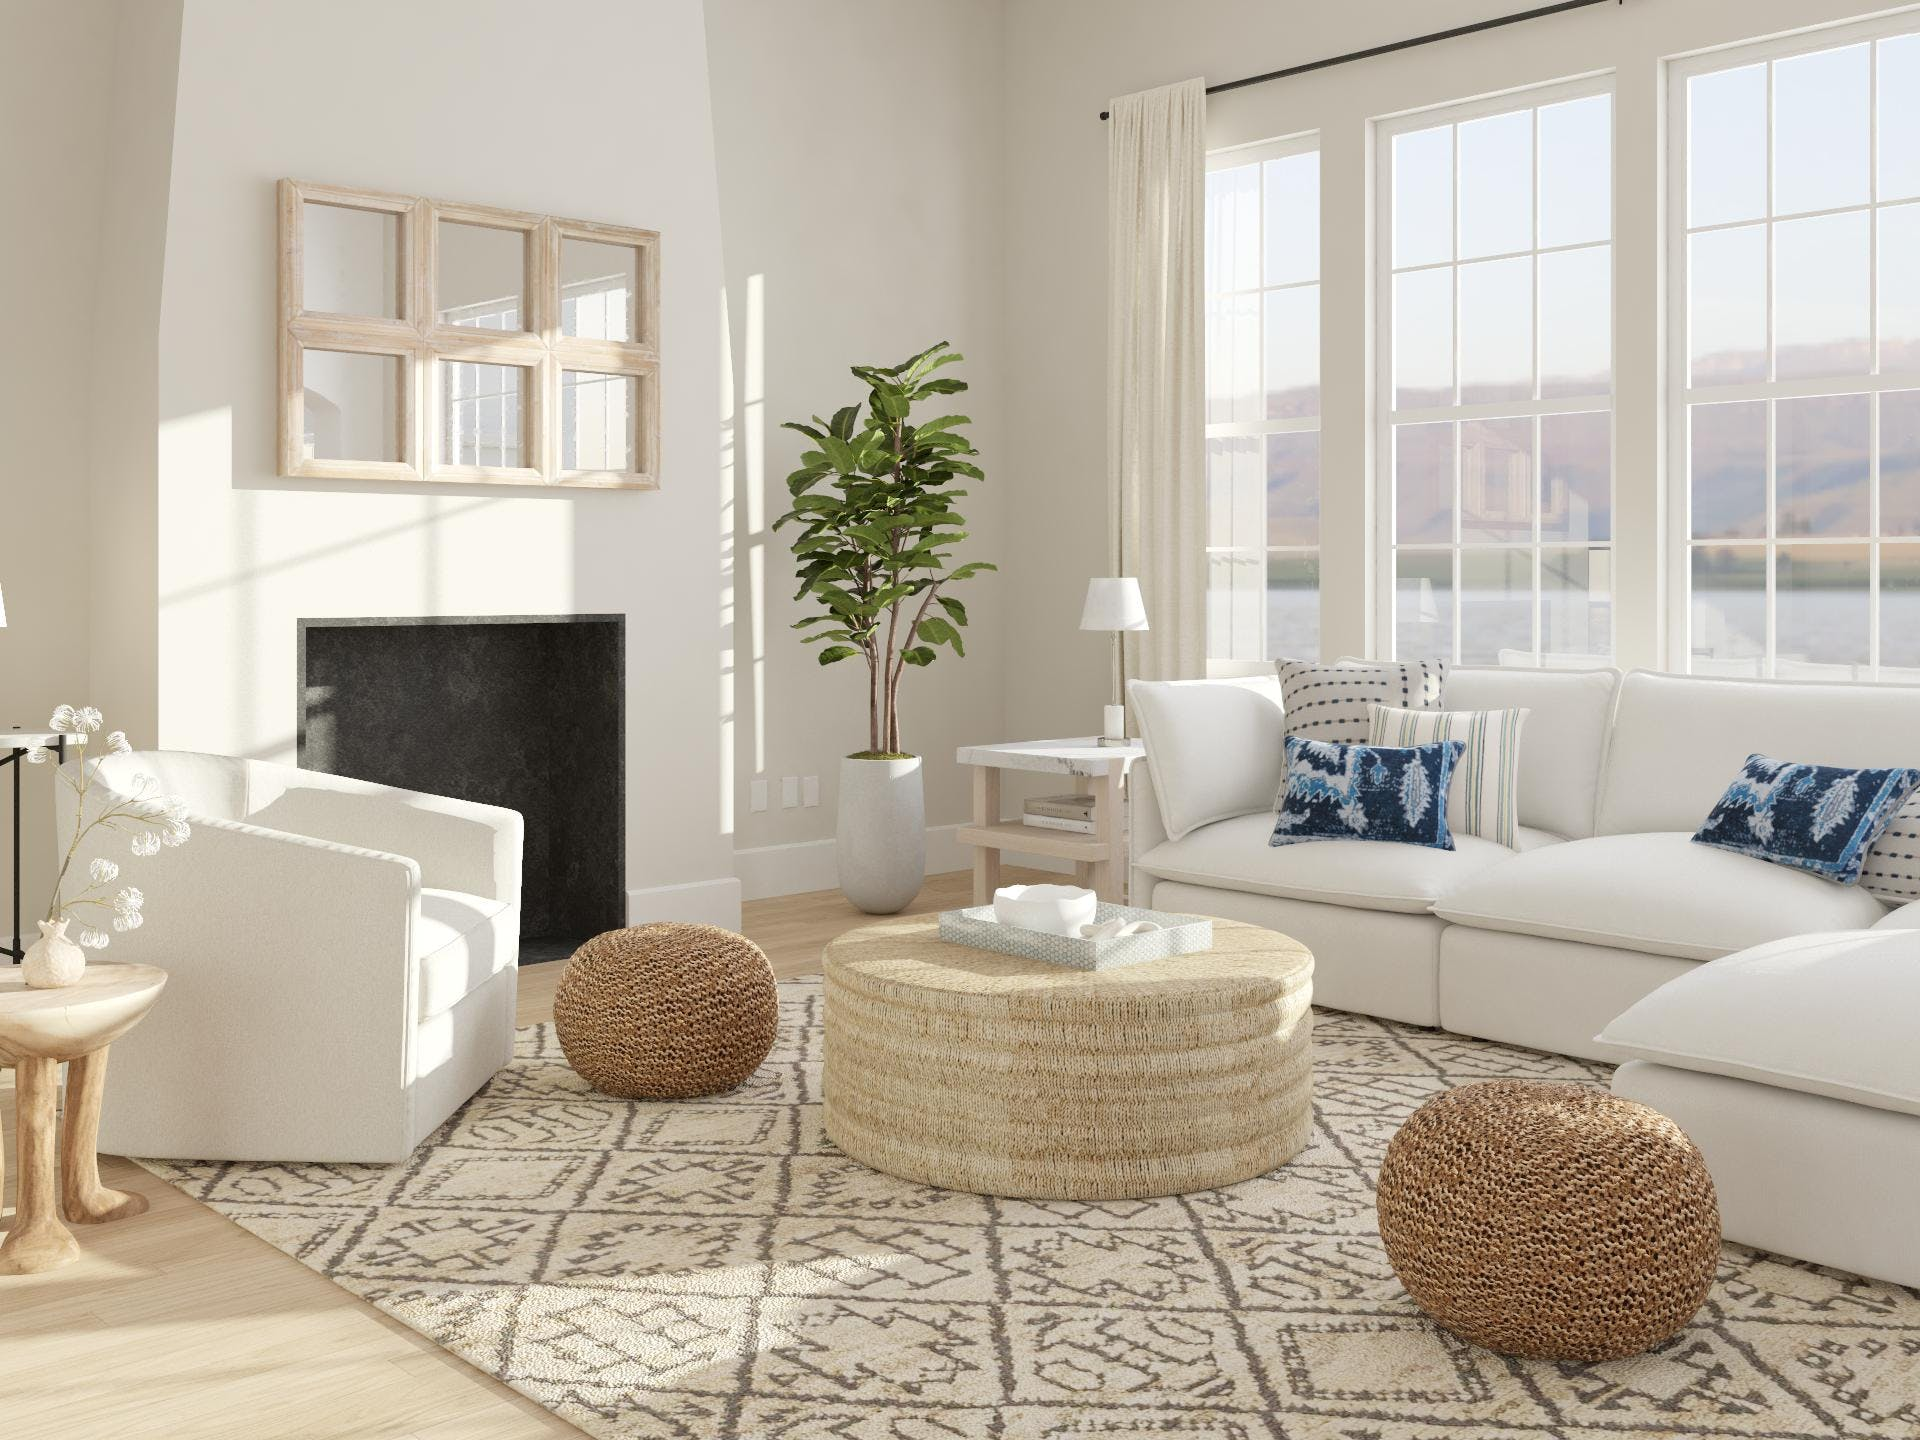 Coastal Living Room Design Ideas And Styles From Modsy Designers